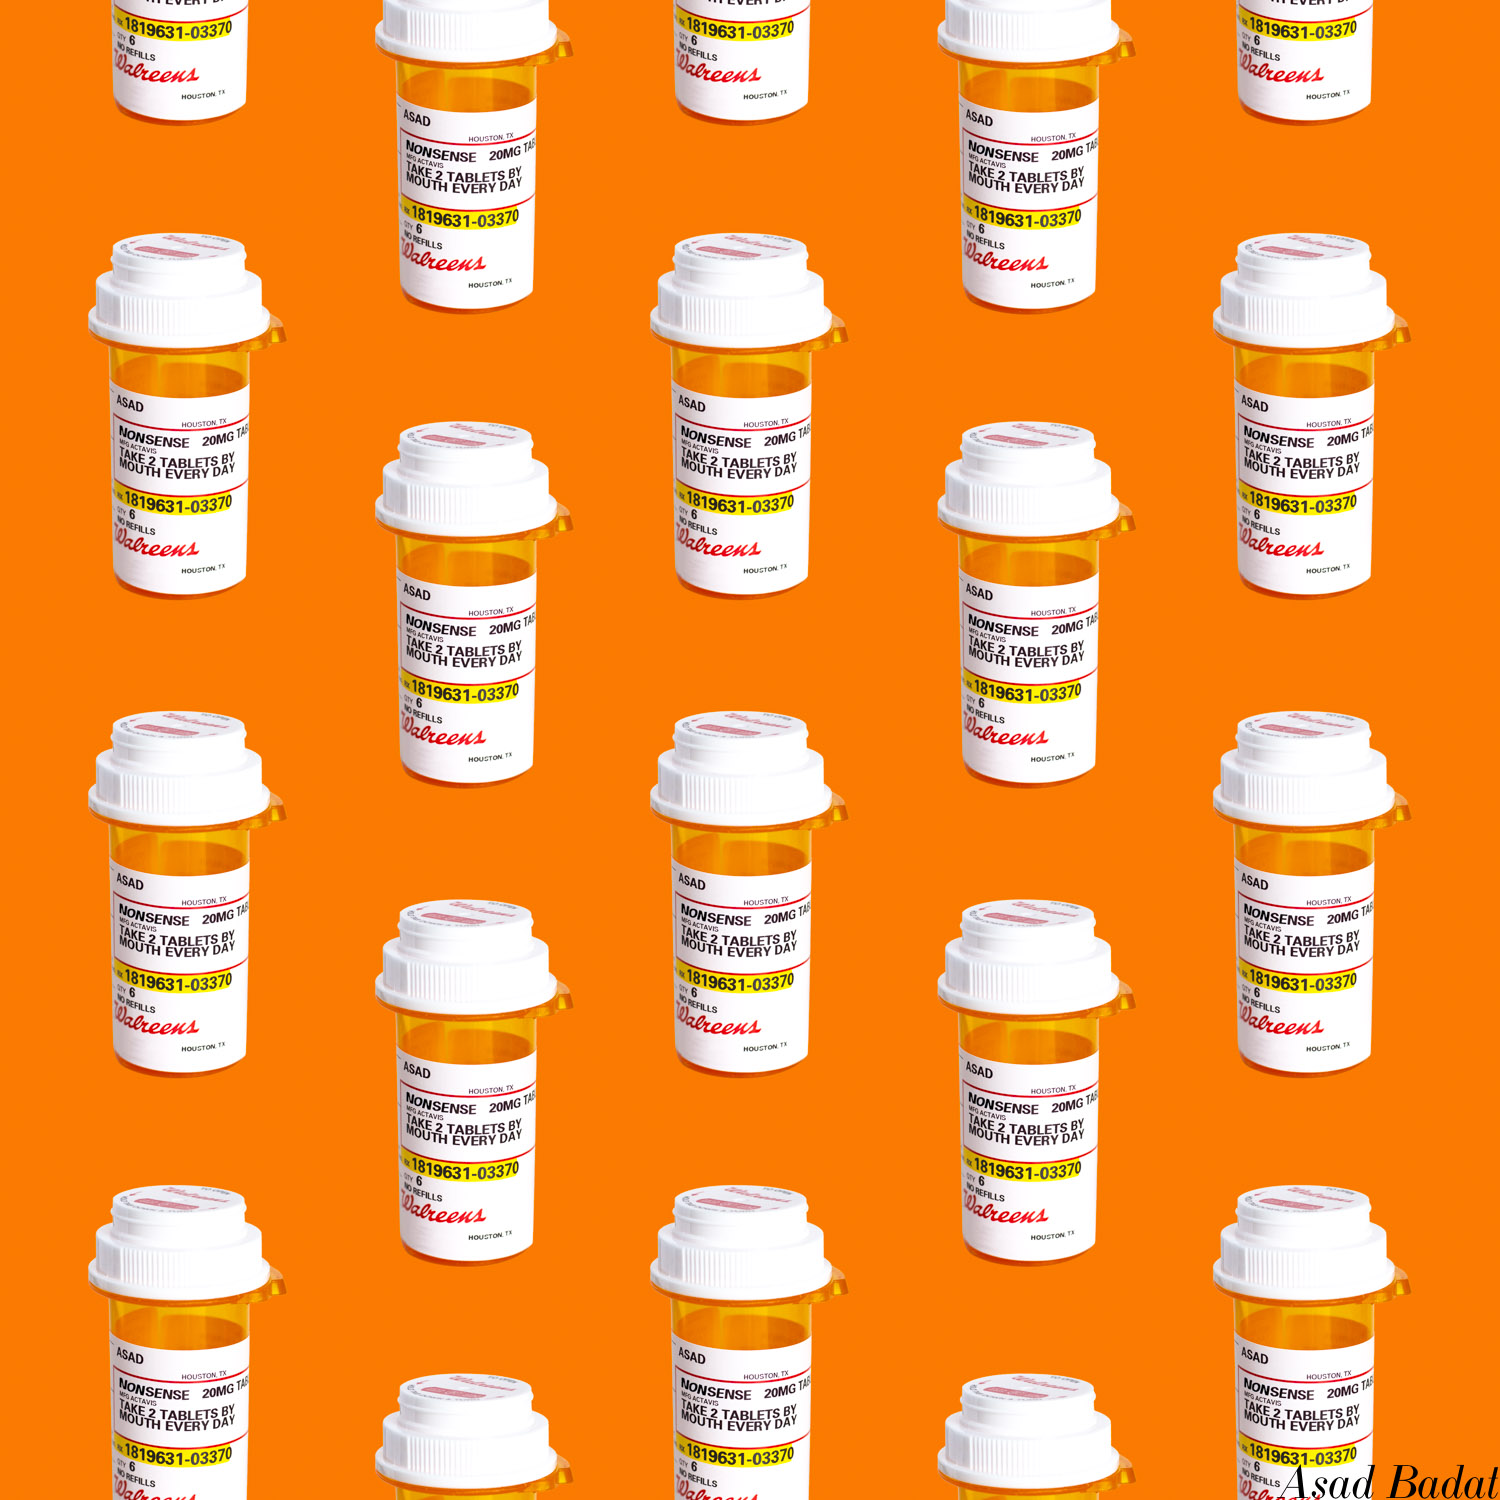 Asad-Badat-Under-the-Weather-Pill-Bottle-Print.jpg